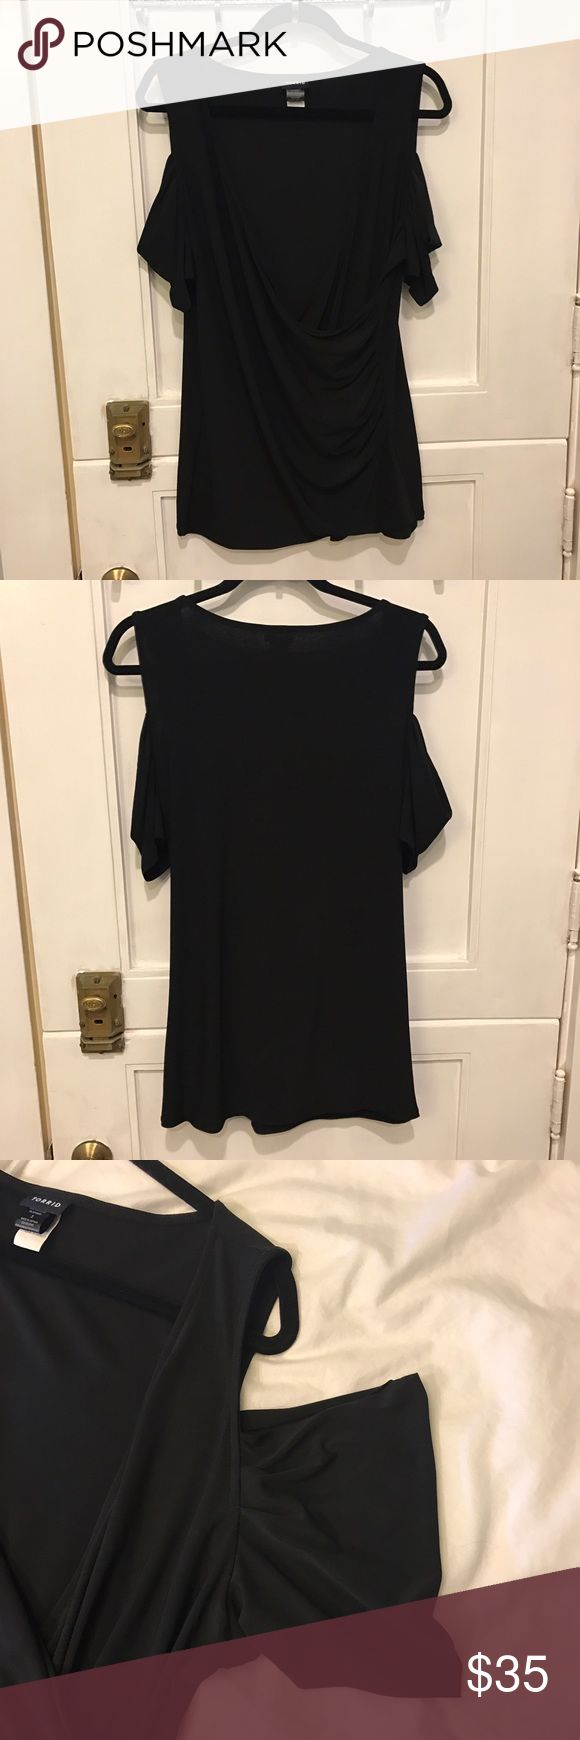 Black Cold Shoulder Top Super flattering black cold shoulder top! Front of the top crosses to a deep v-neck. Material is sturdy an flexible to smooth out your stomach and back area! Never been worn, but took the tags off! torrid Tops